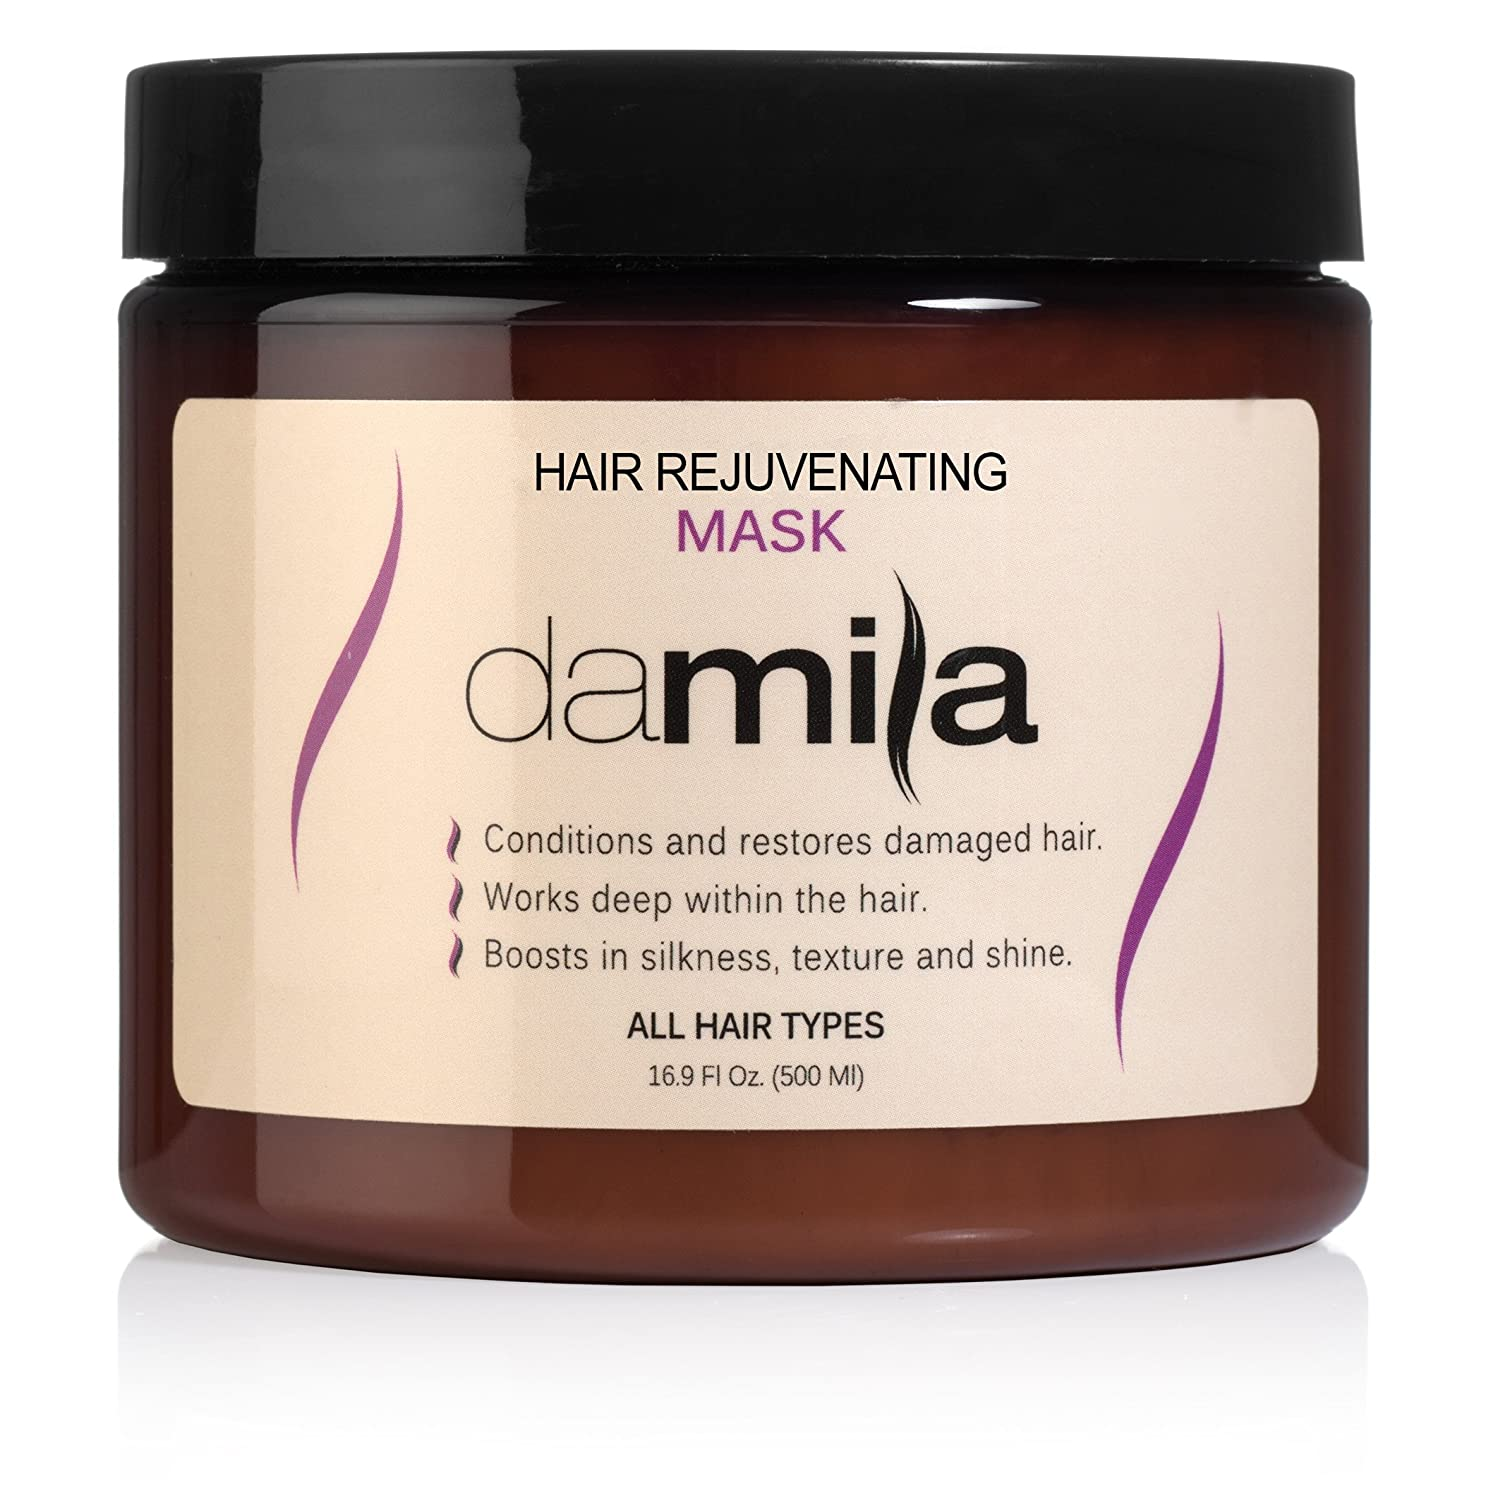 Hydration Hair Mask for all hair types - Best Damaged Hair Treatment / Repair Mask for Hair Uses Hydrolyzed Keratin to Strengthen and Moisturize (16.9 oz / 500 ml) by Damila